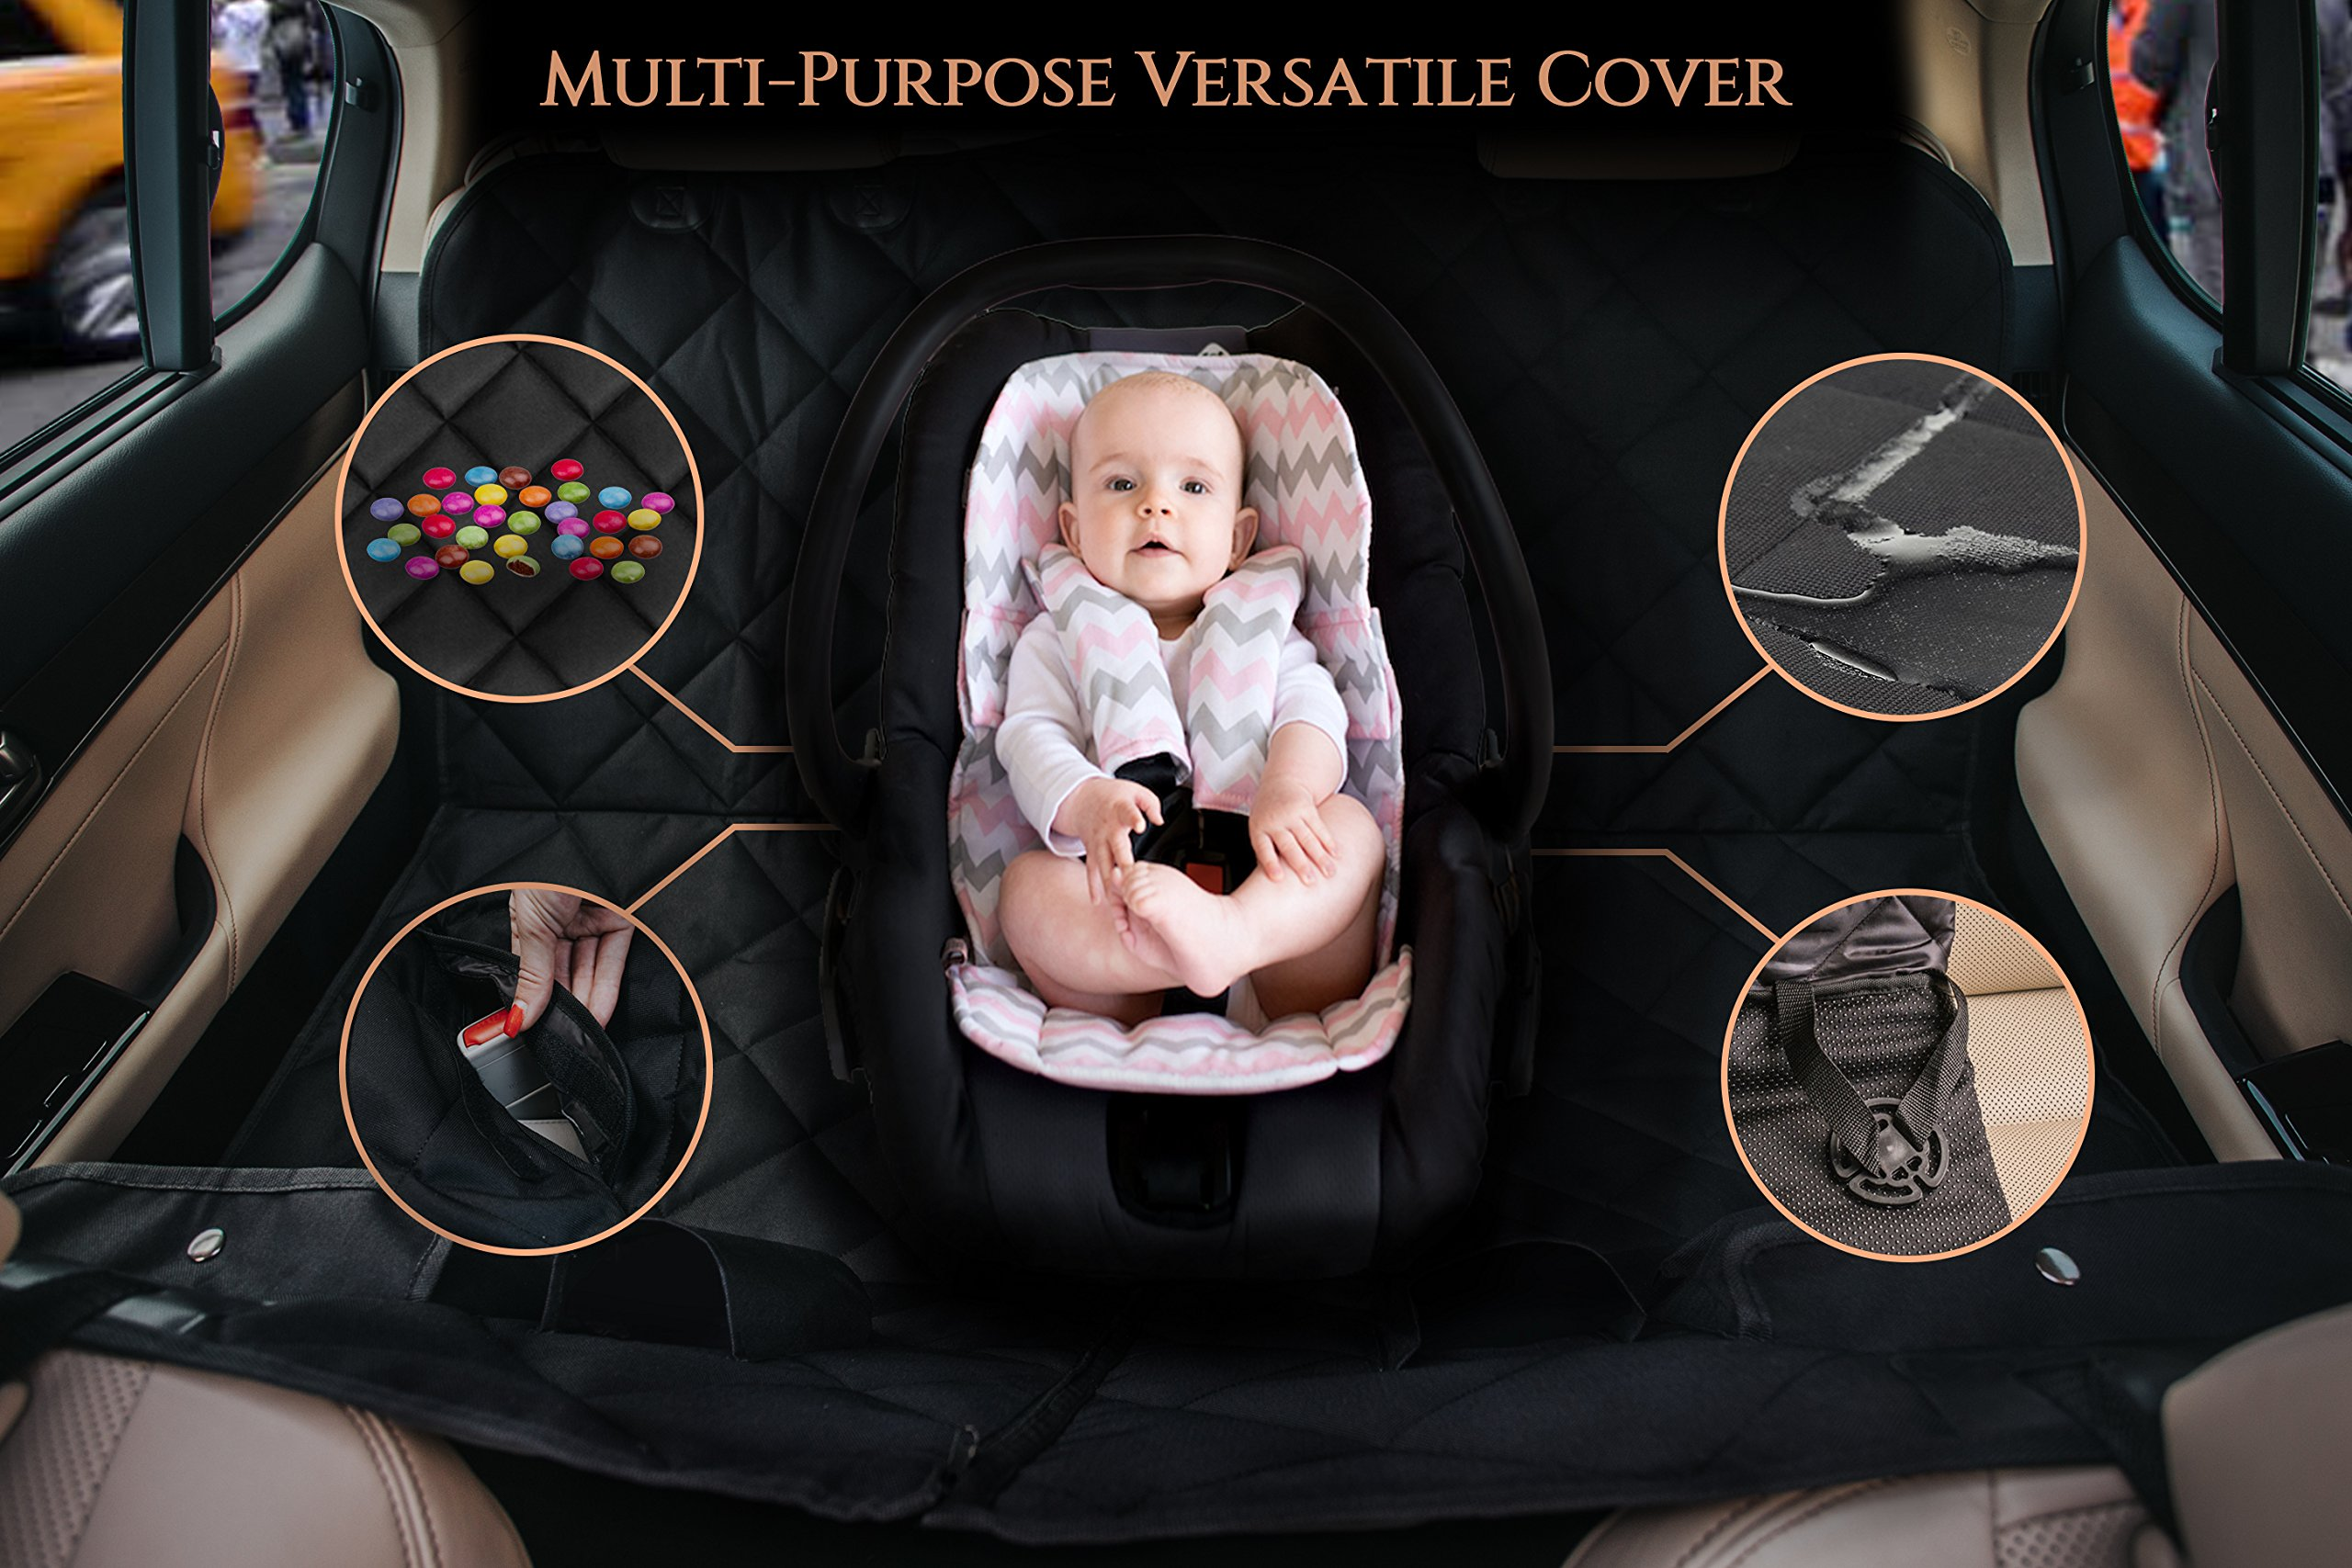 EVOest Dog Car Seat Cover for Cars/Trucks/SUV's,Hammock Convertible, Waterproof Pet Back Seat Protector with Extra Side Flaps, Bonus Pet Seat Belt & Carry Bag (Medium) by EVOest (Image #8)